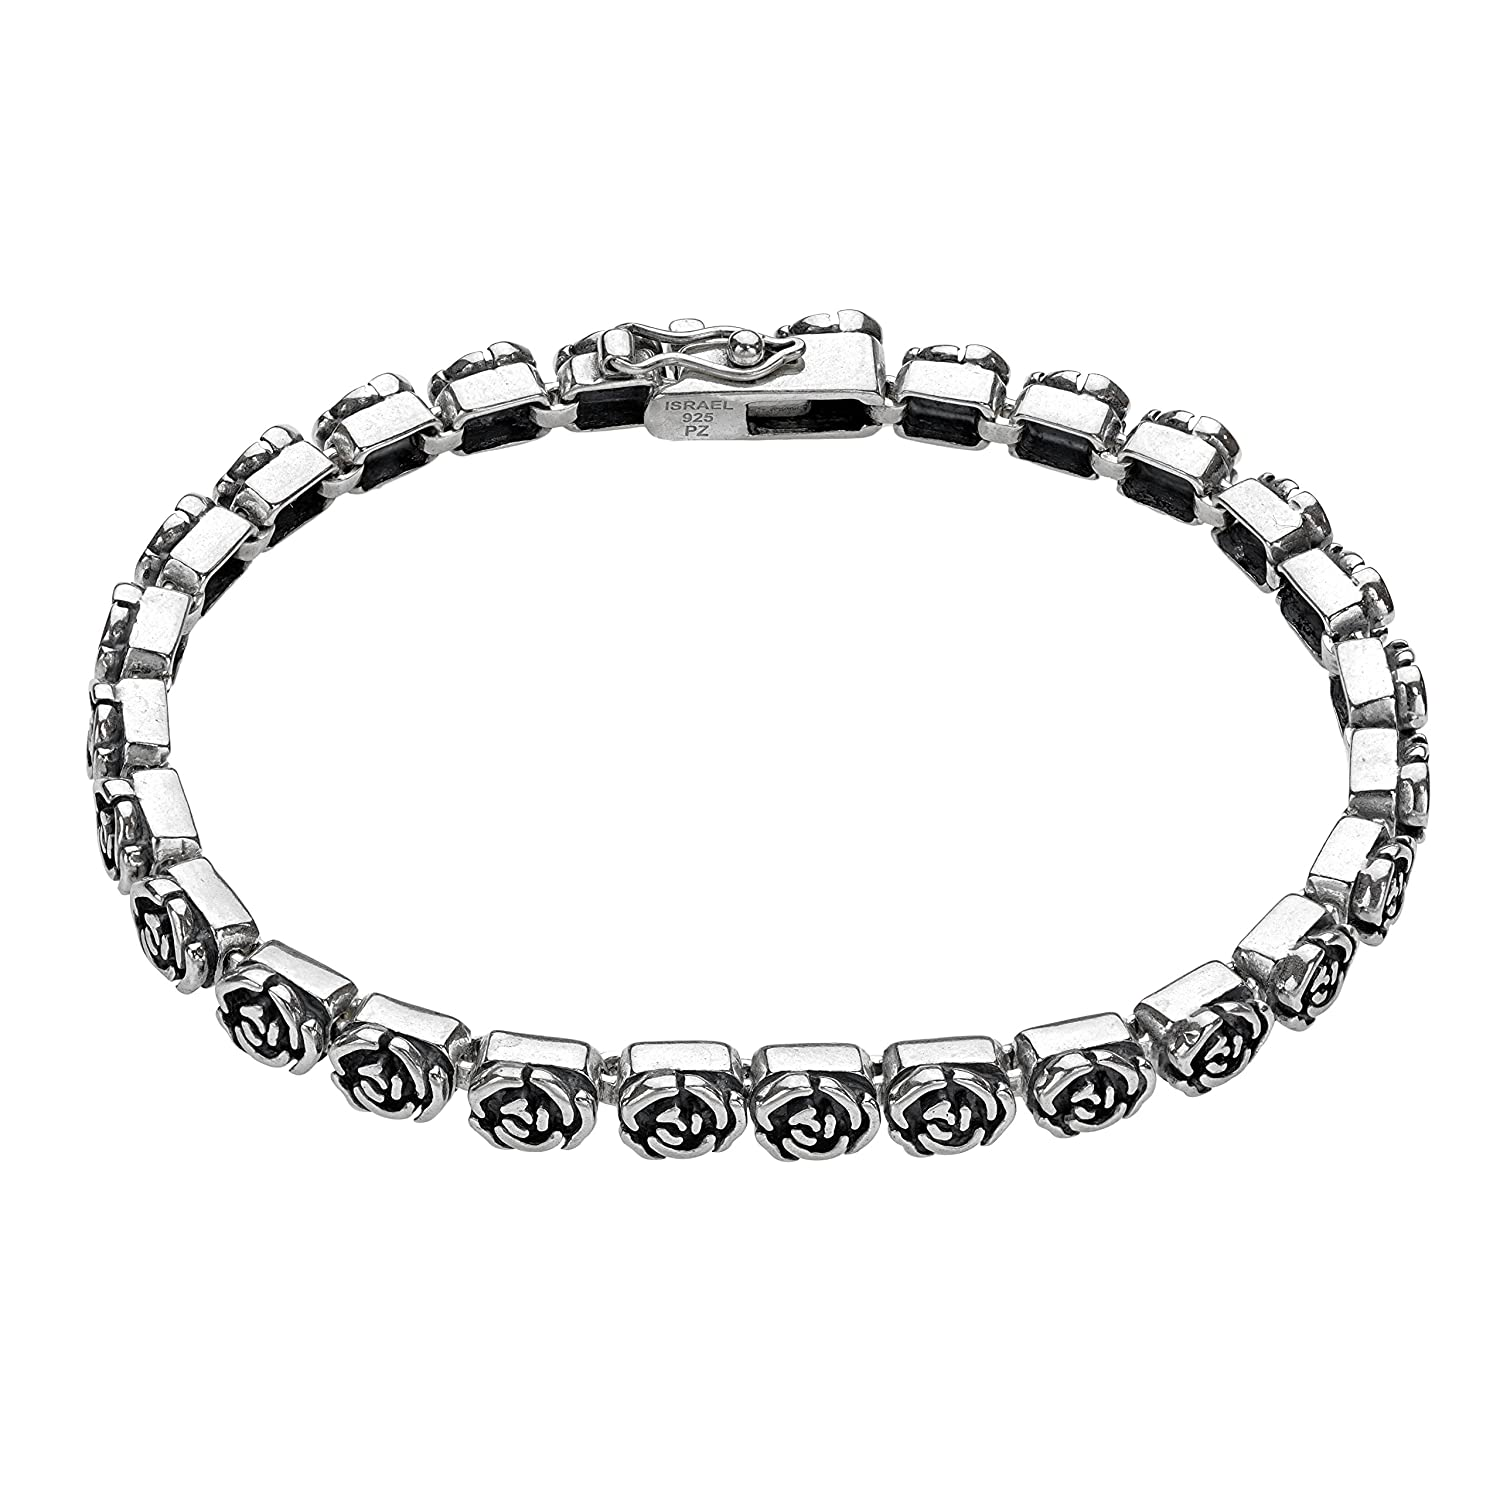 ♥925 Sterling Silver Rose Design Tennis Bracelet by Paz Creations Fine Jewelry, Made in Israel